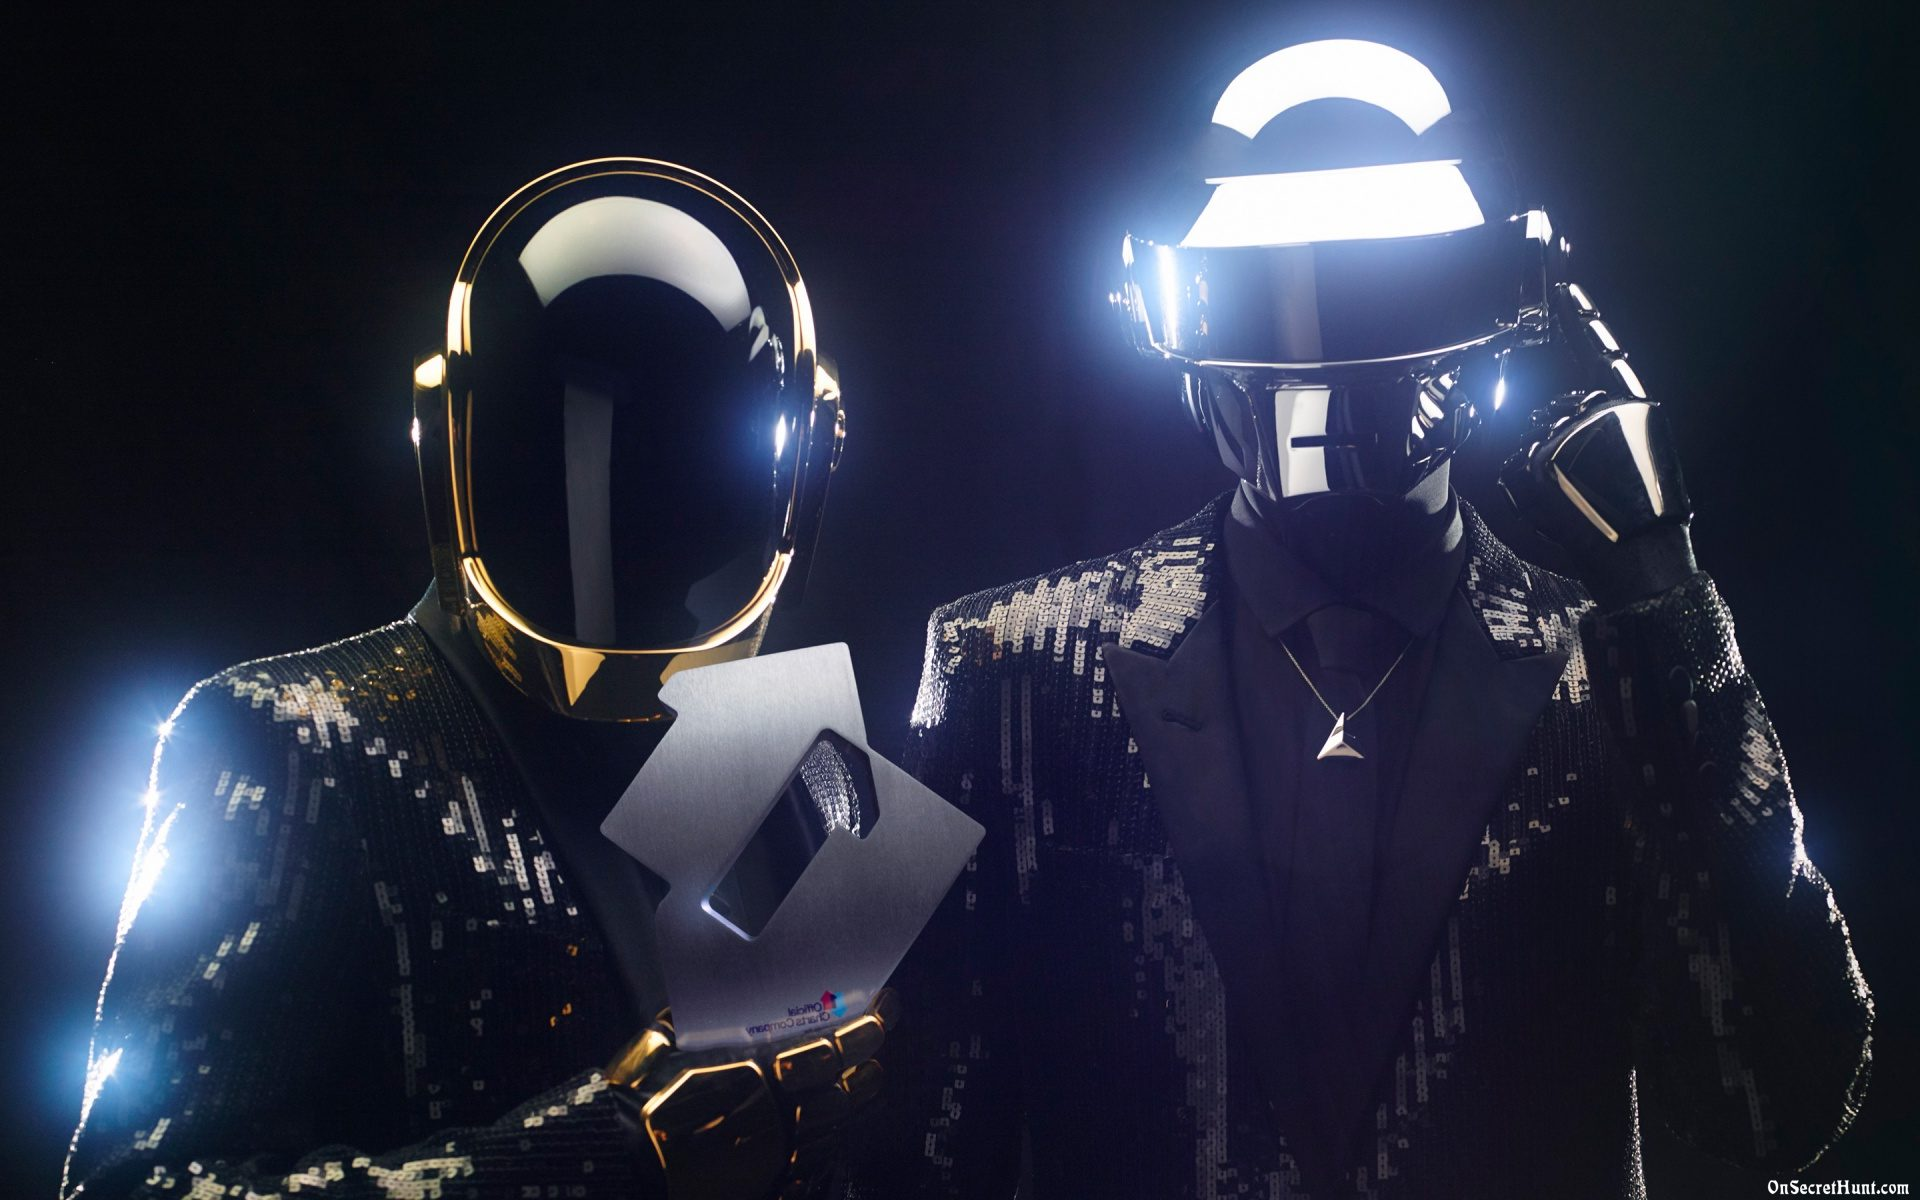 Watch Unseen Footage Of Daft Punk S Alive Tour Is Your Weekend Sorted The Original Ballers